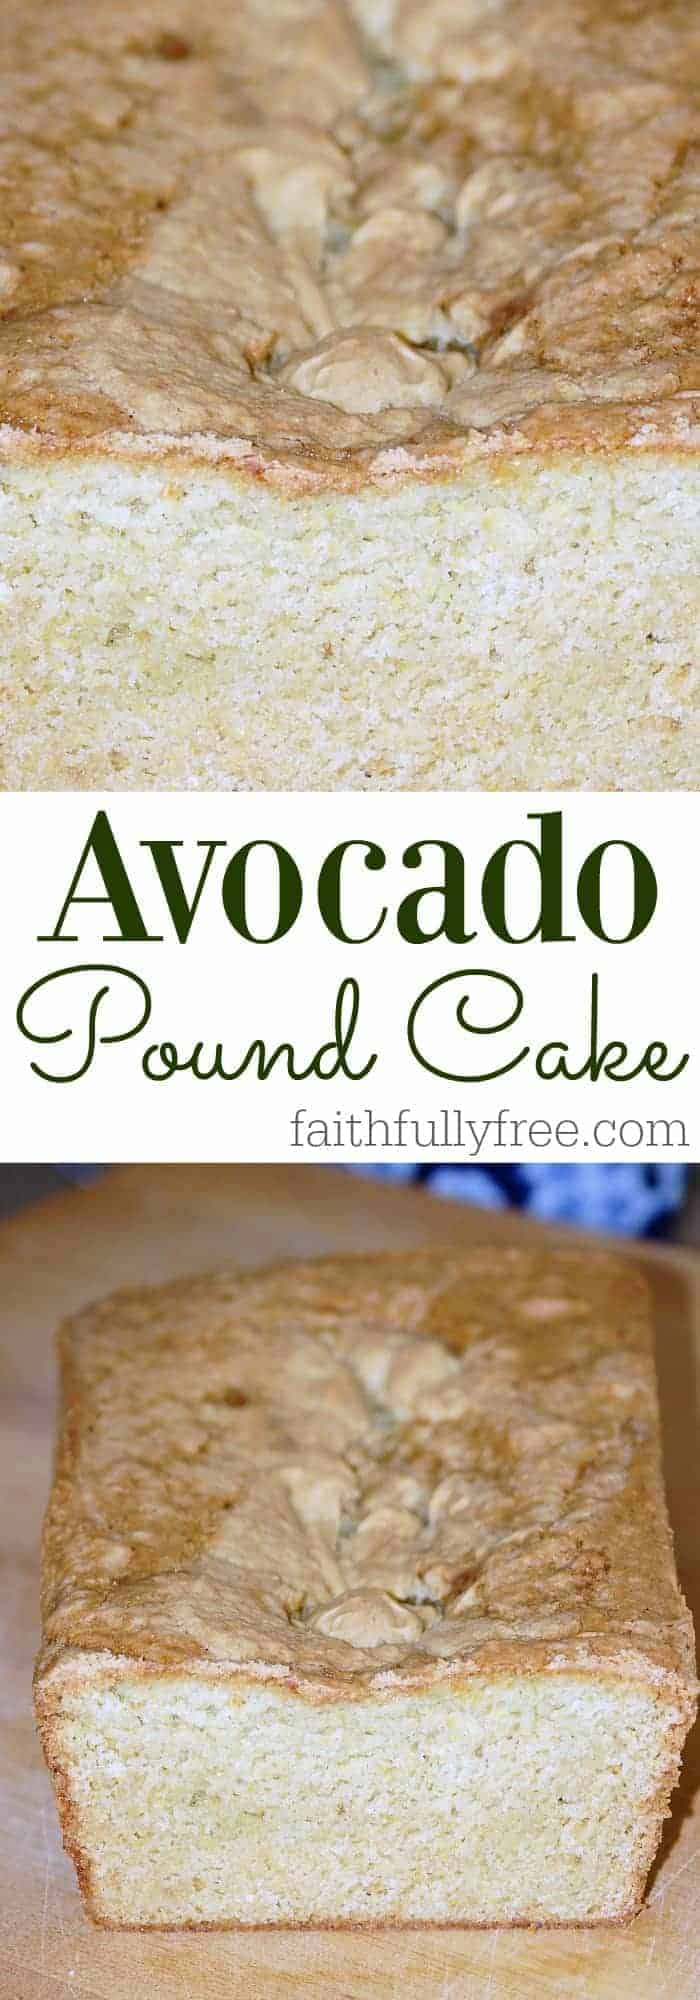 Super Moist Avocado Pound Cake Recipe